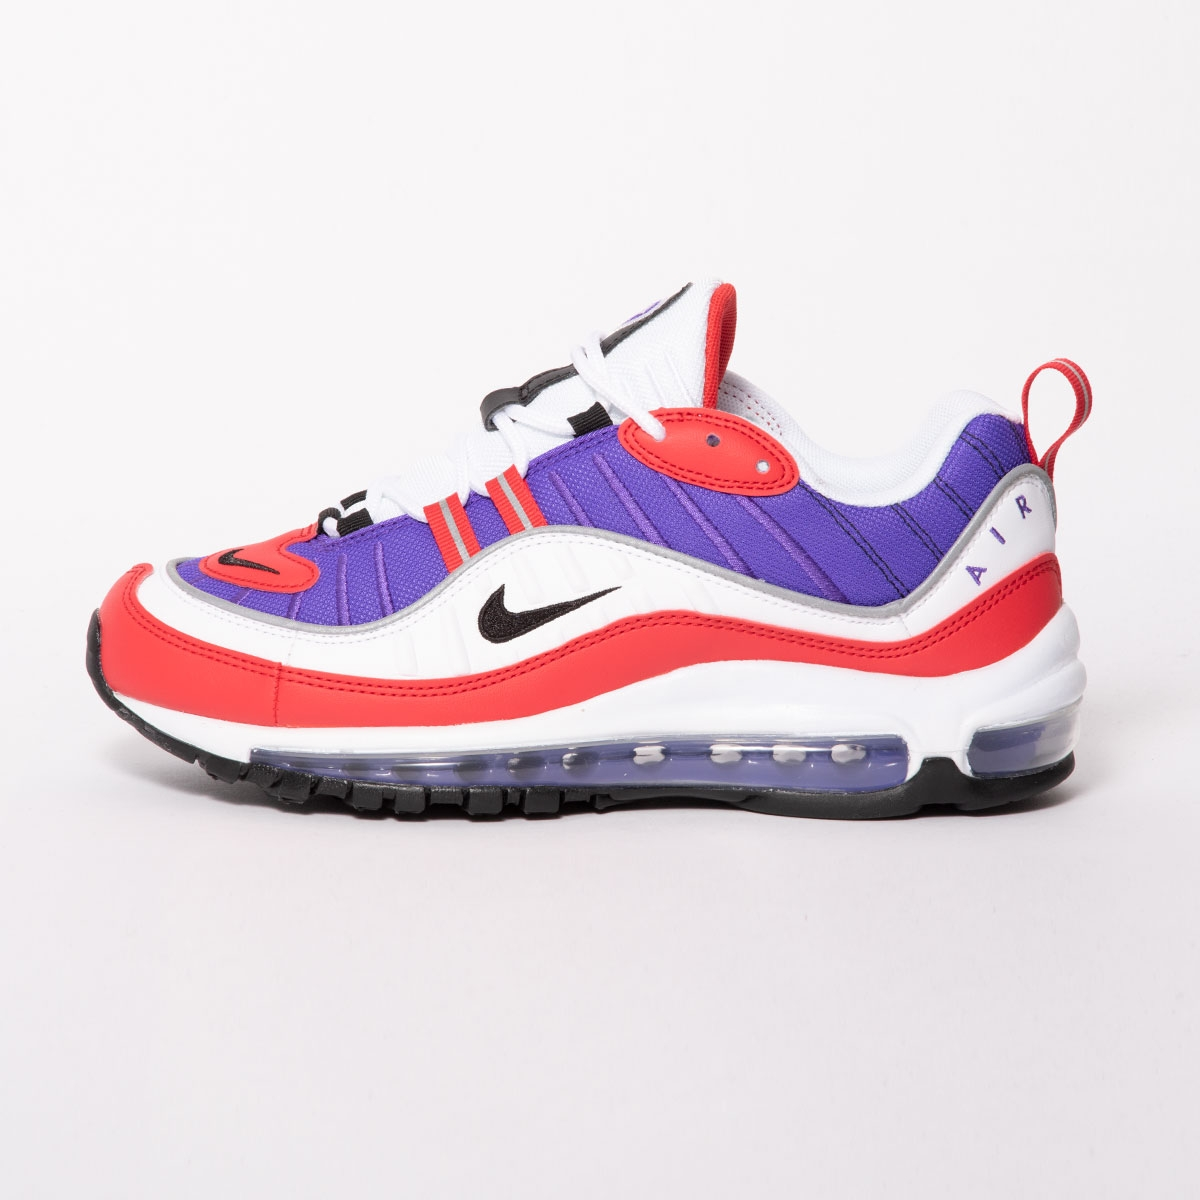 Ladies Nike Trainers in WS2 Walsall for